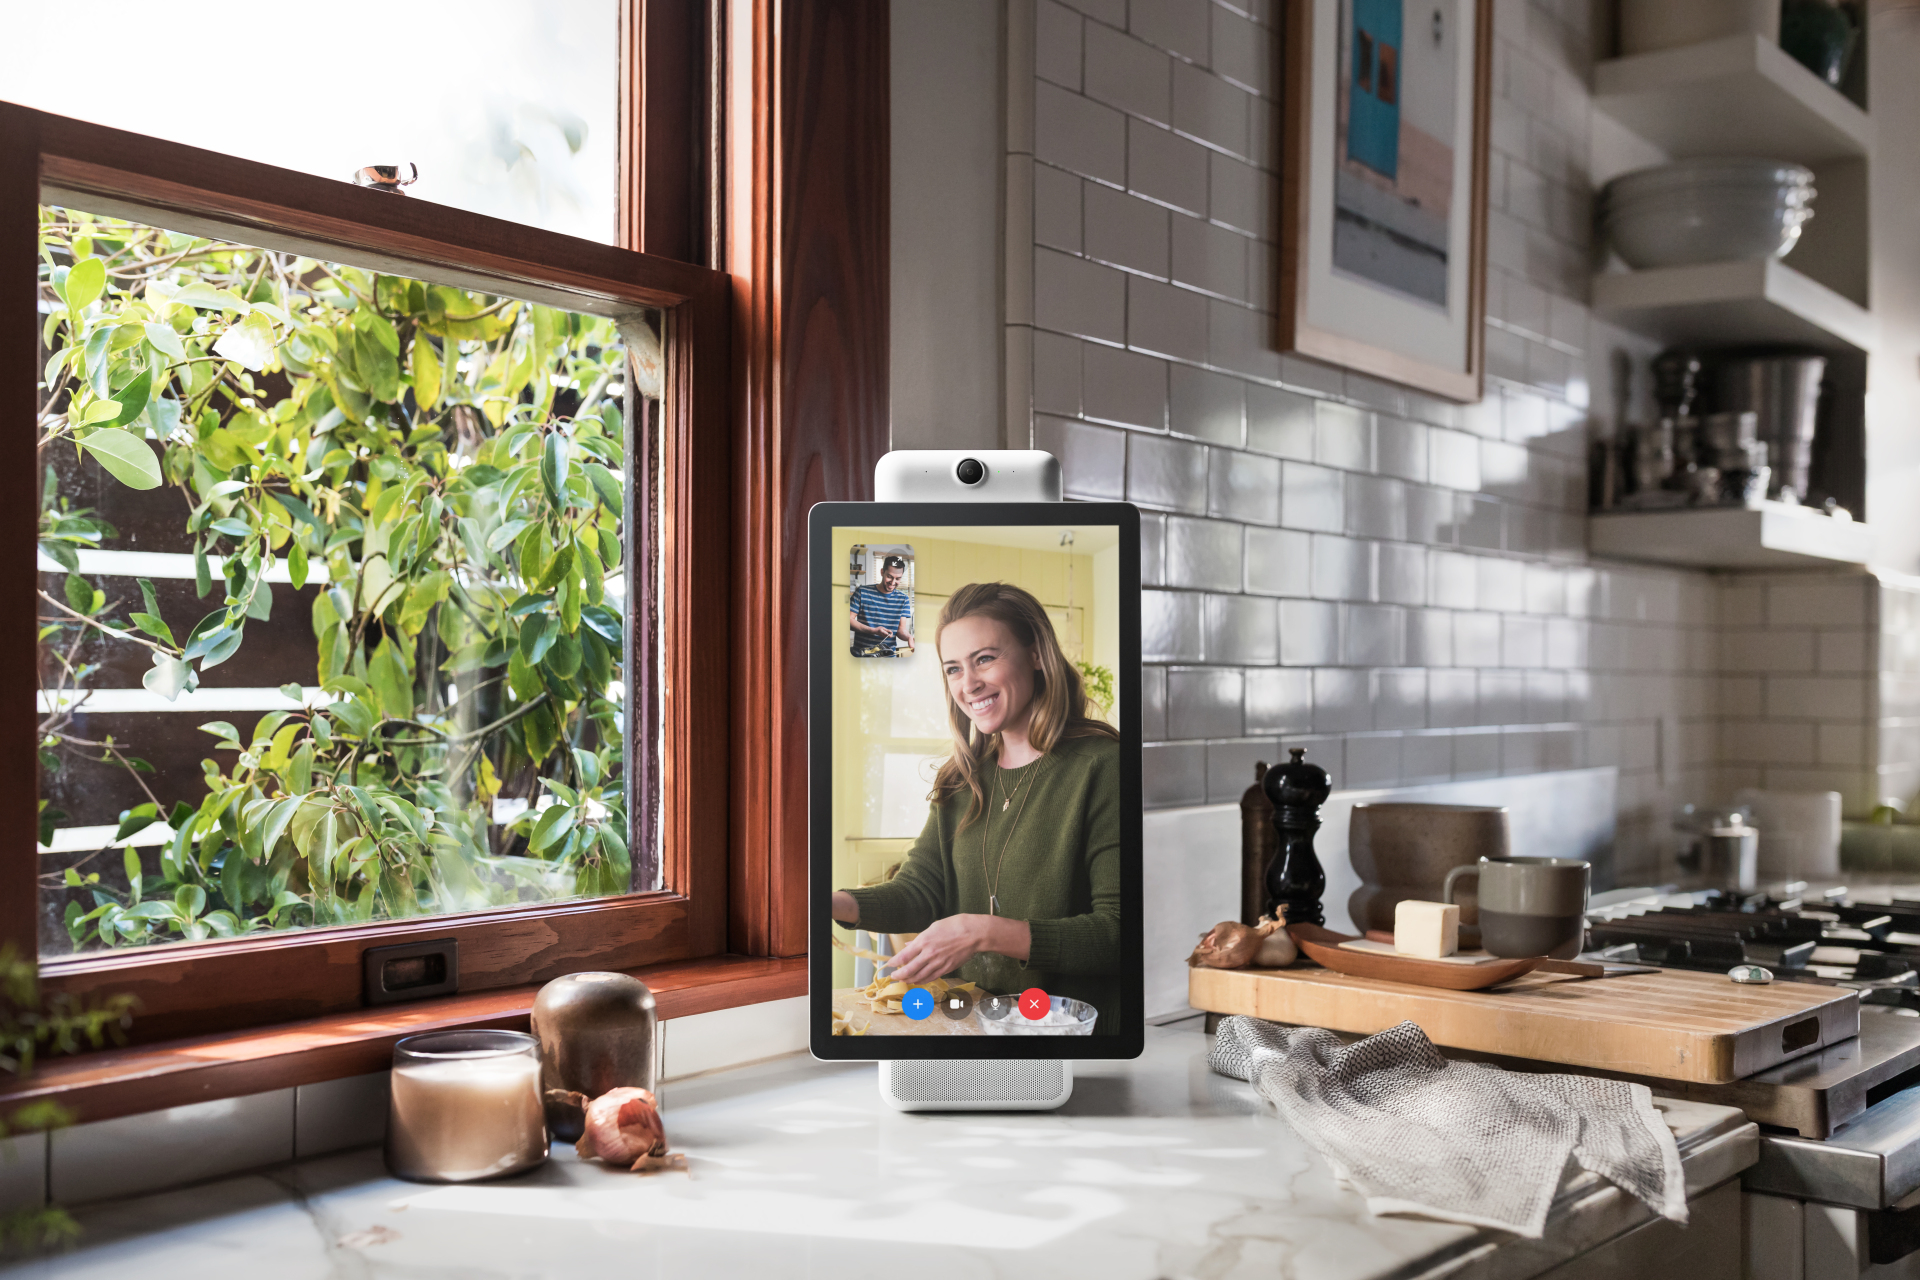 Facebook announces its new video-calling device, Portal